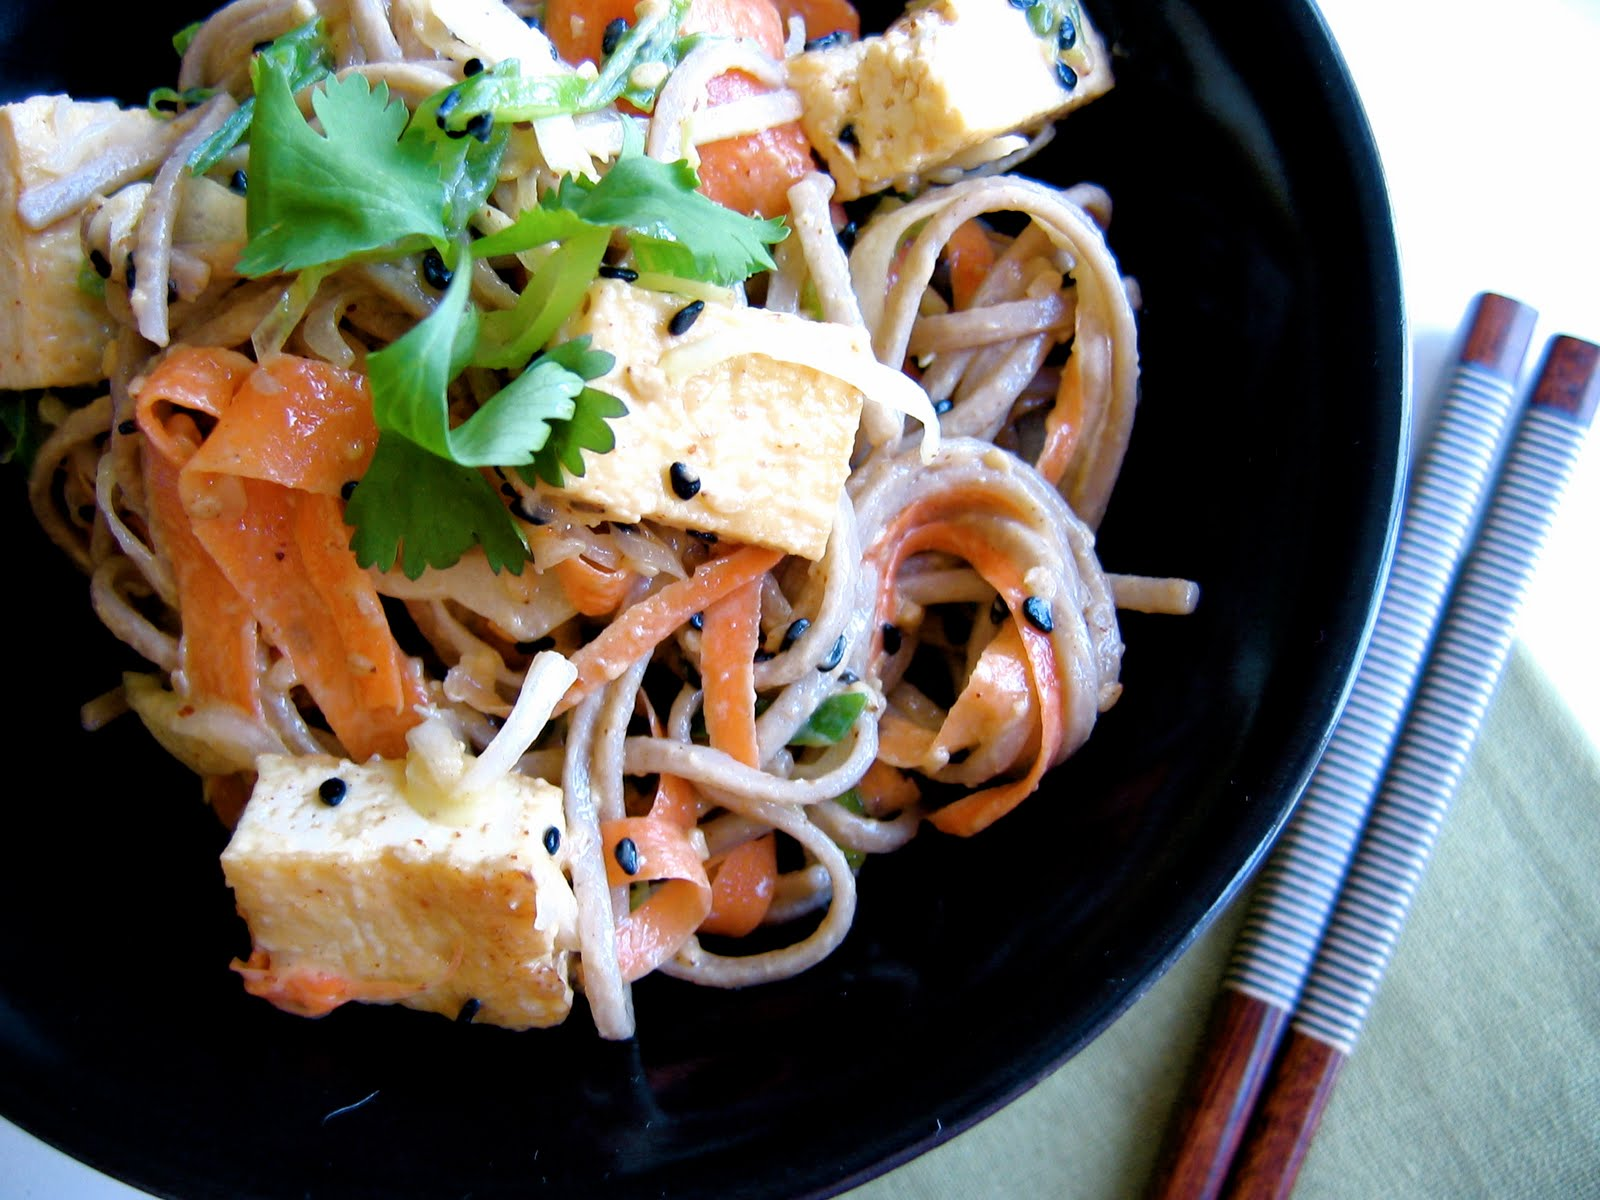 chilled noodle salad tossed with vegetables, crispy tofu, and a creamy ...